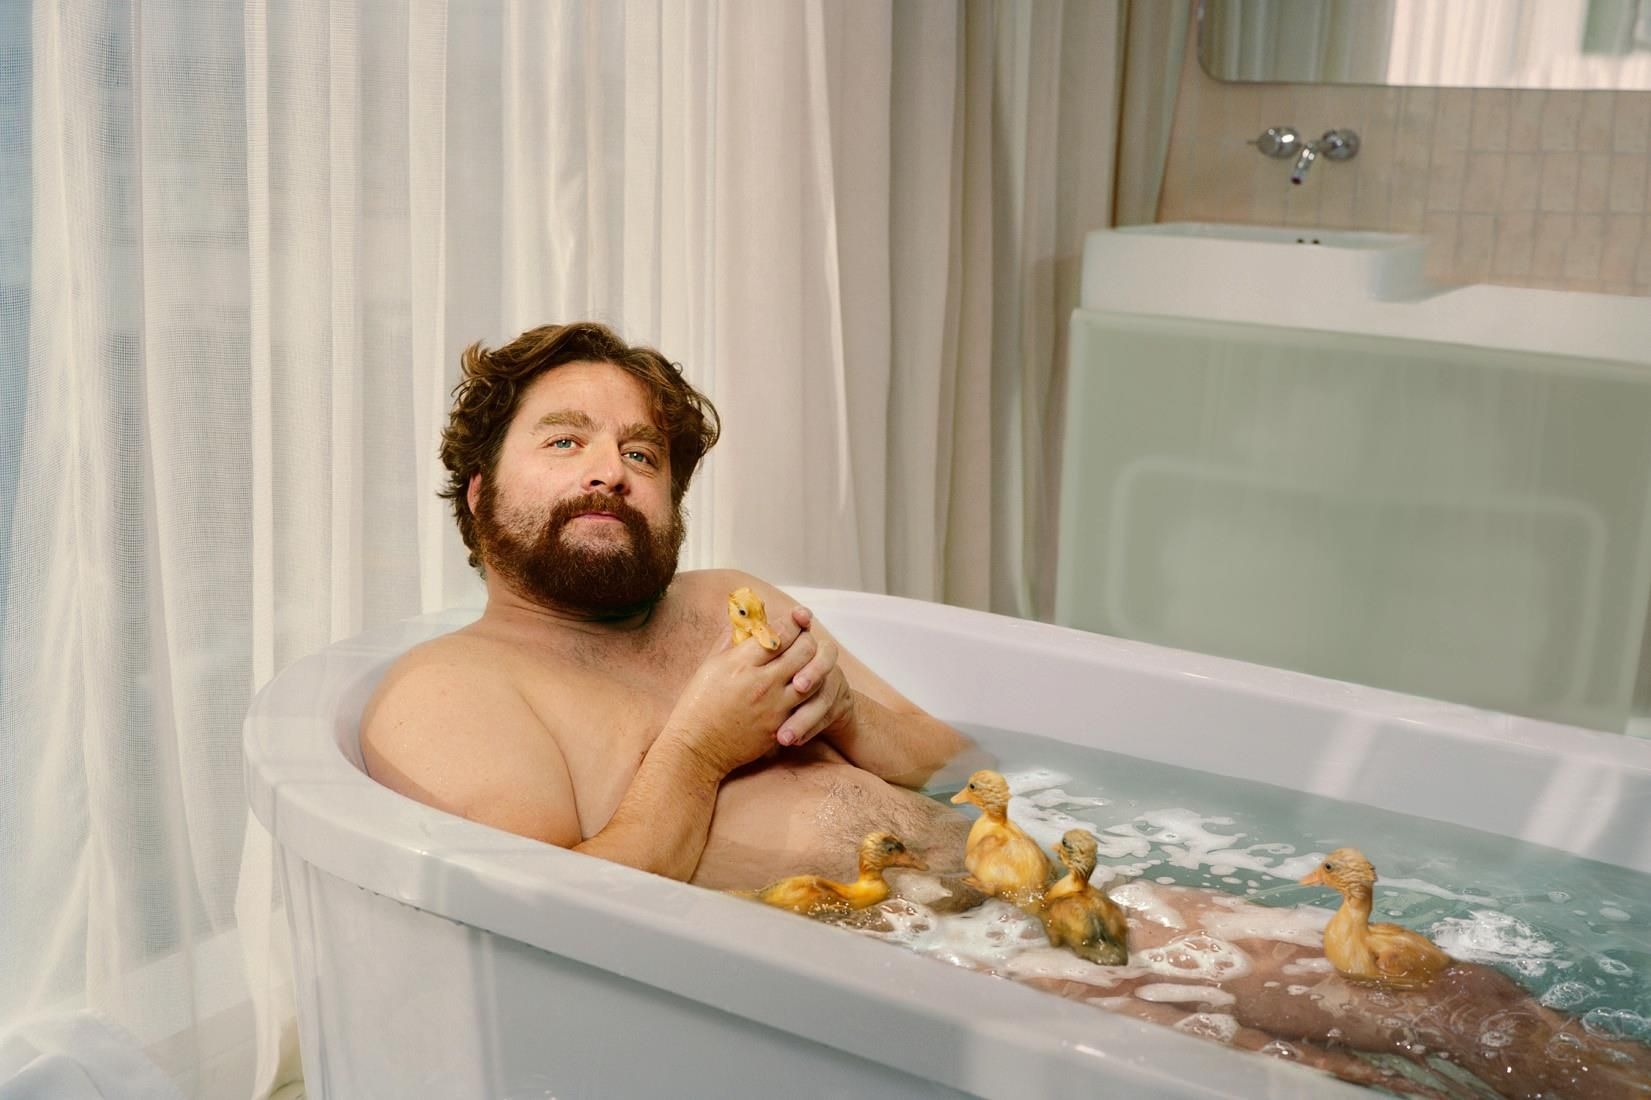 10 Things About Zach Galifianakis That Will Surprise You